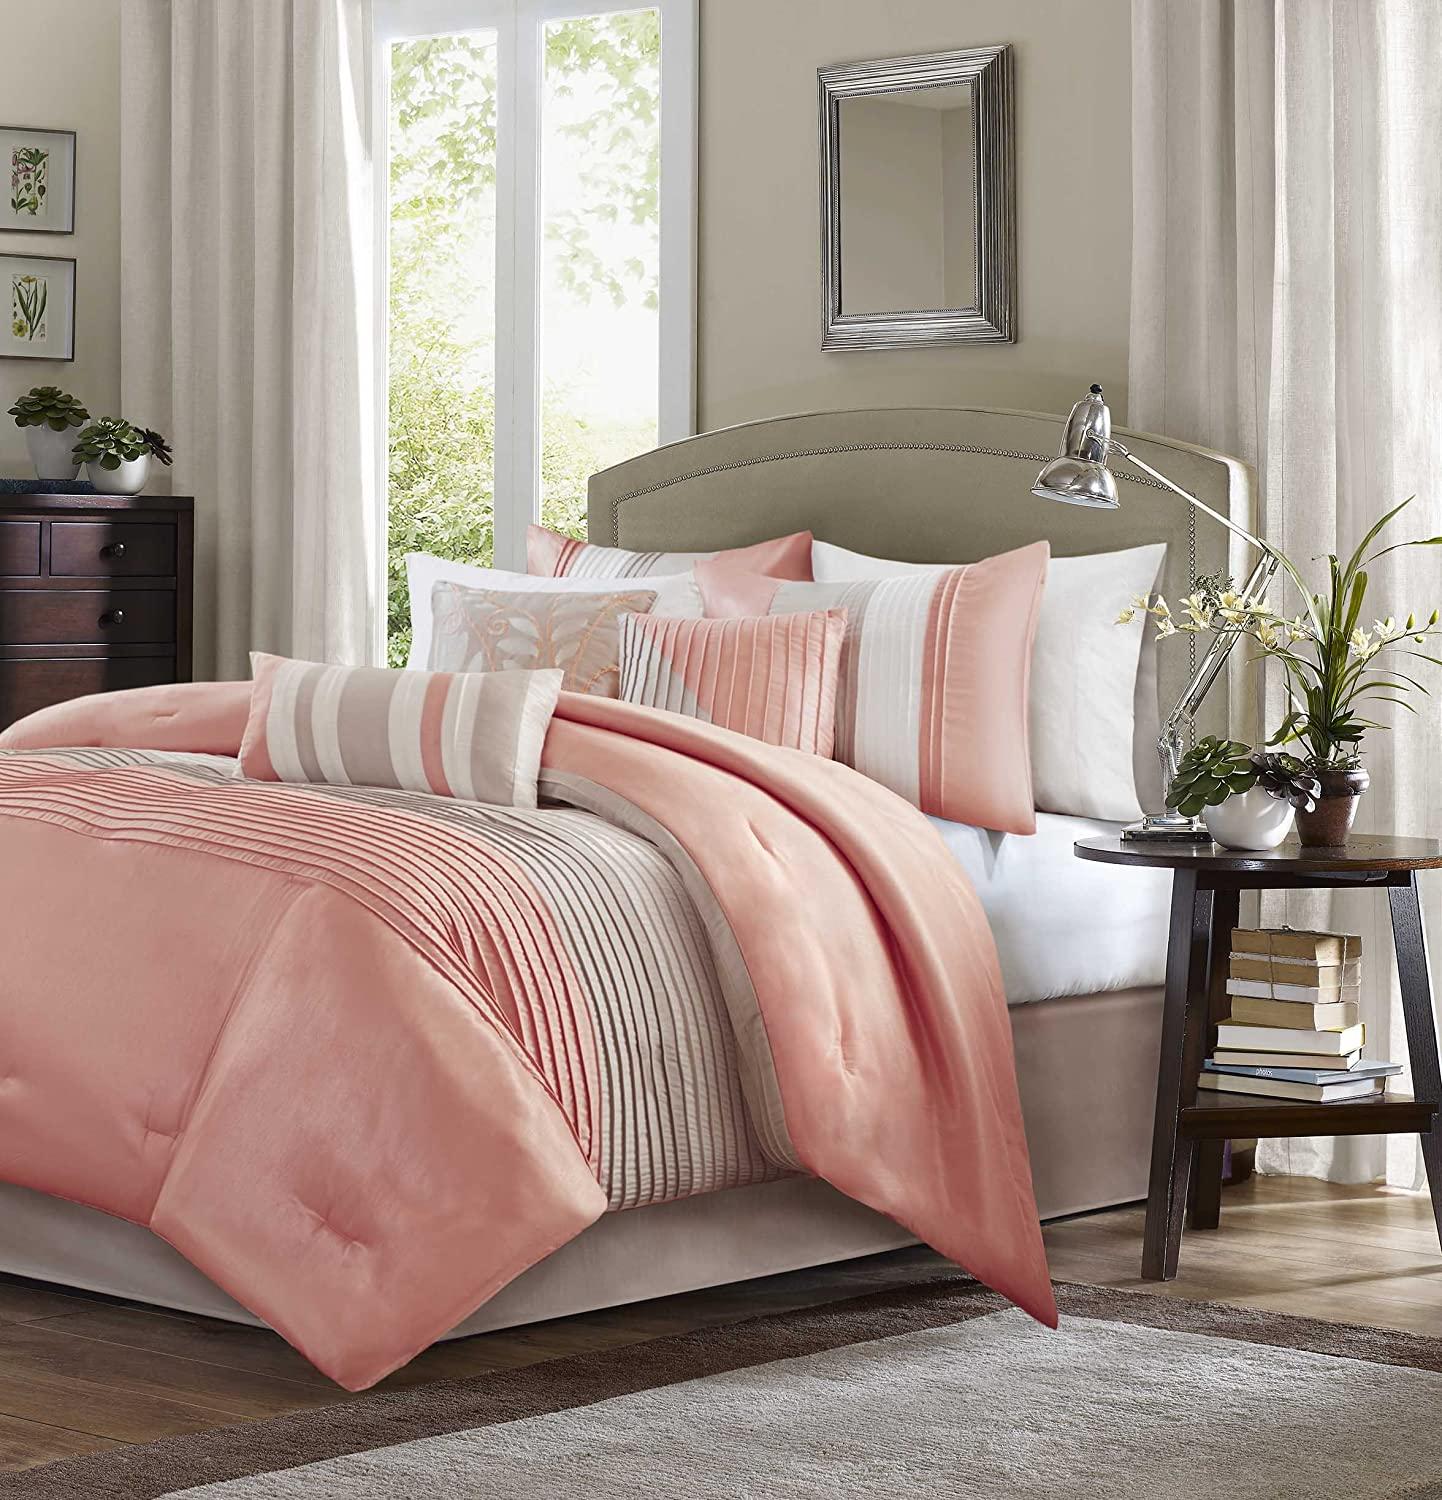 Coral Duvet Cover Set Ease Bedding With Style